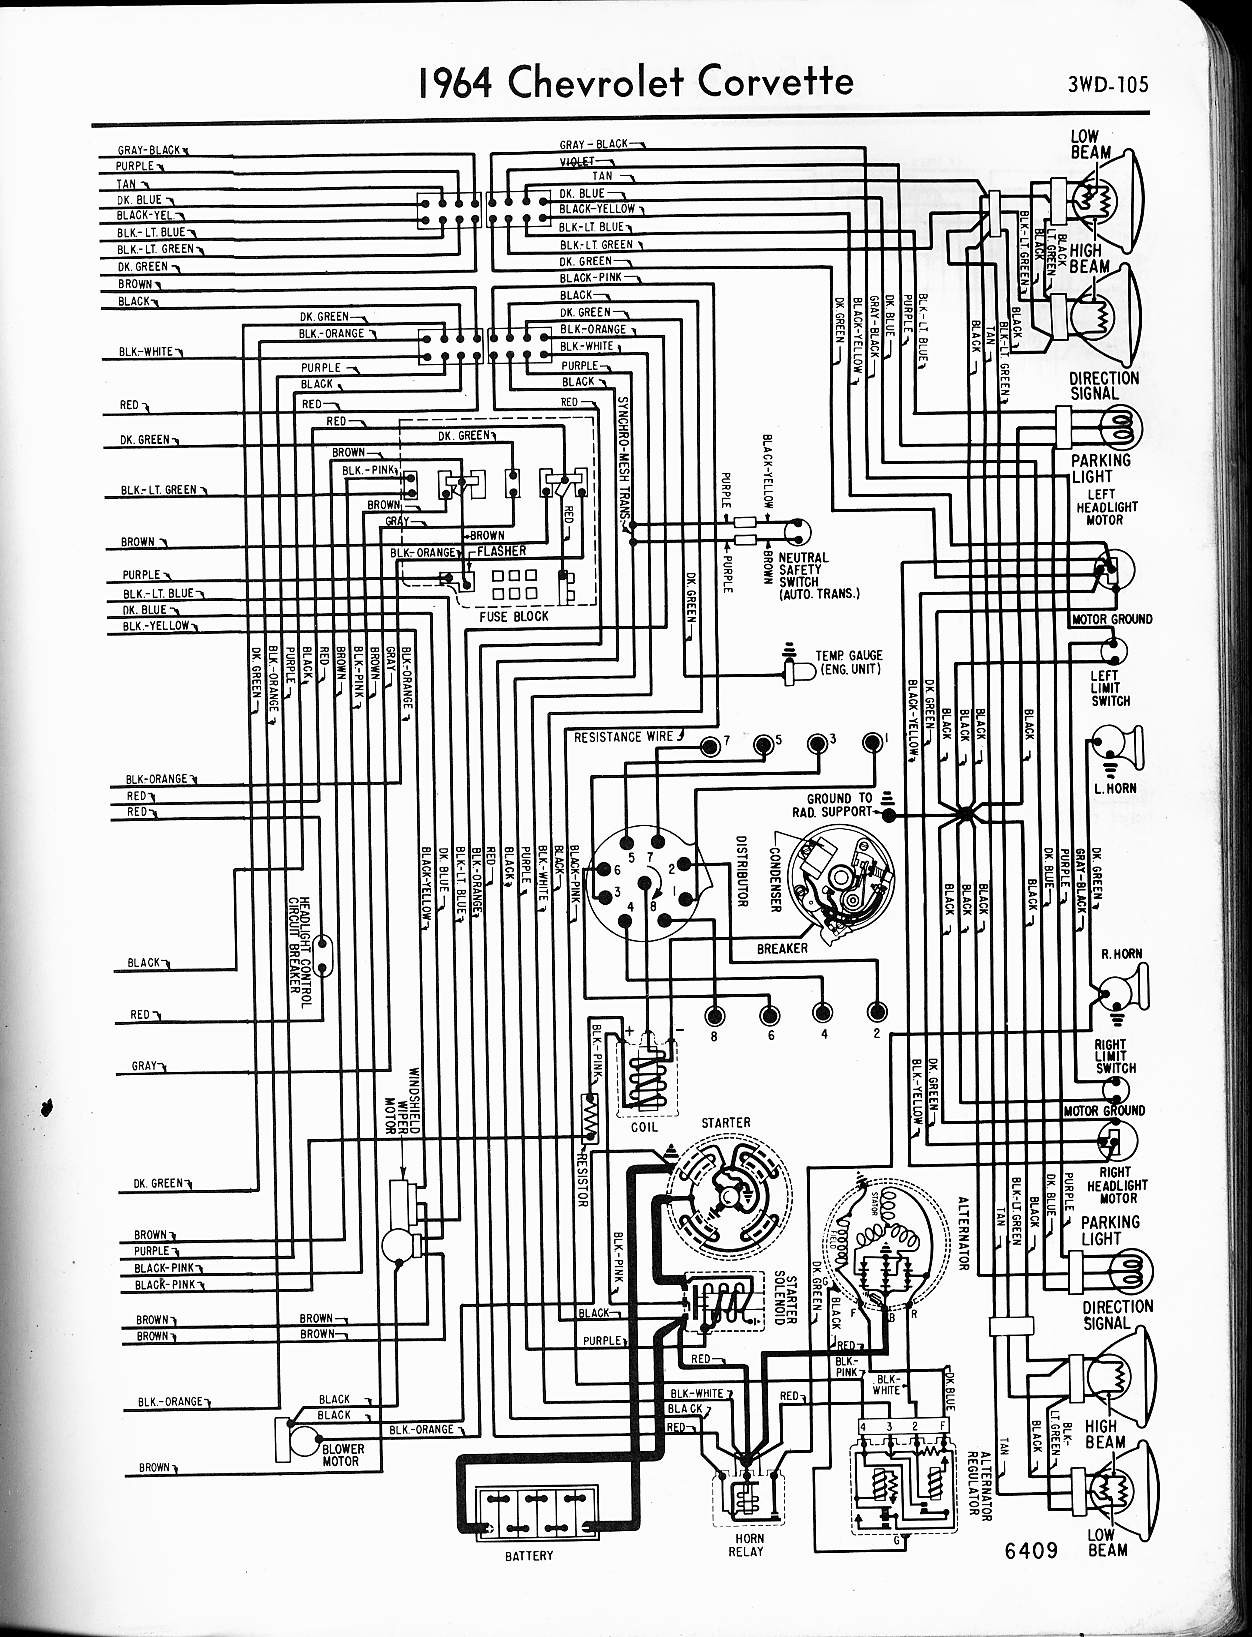 hight resolution of 67 corvette wiring harness wiring diagram expert c4 corvette wiring harness corvette wiring harness